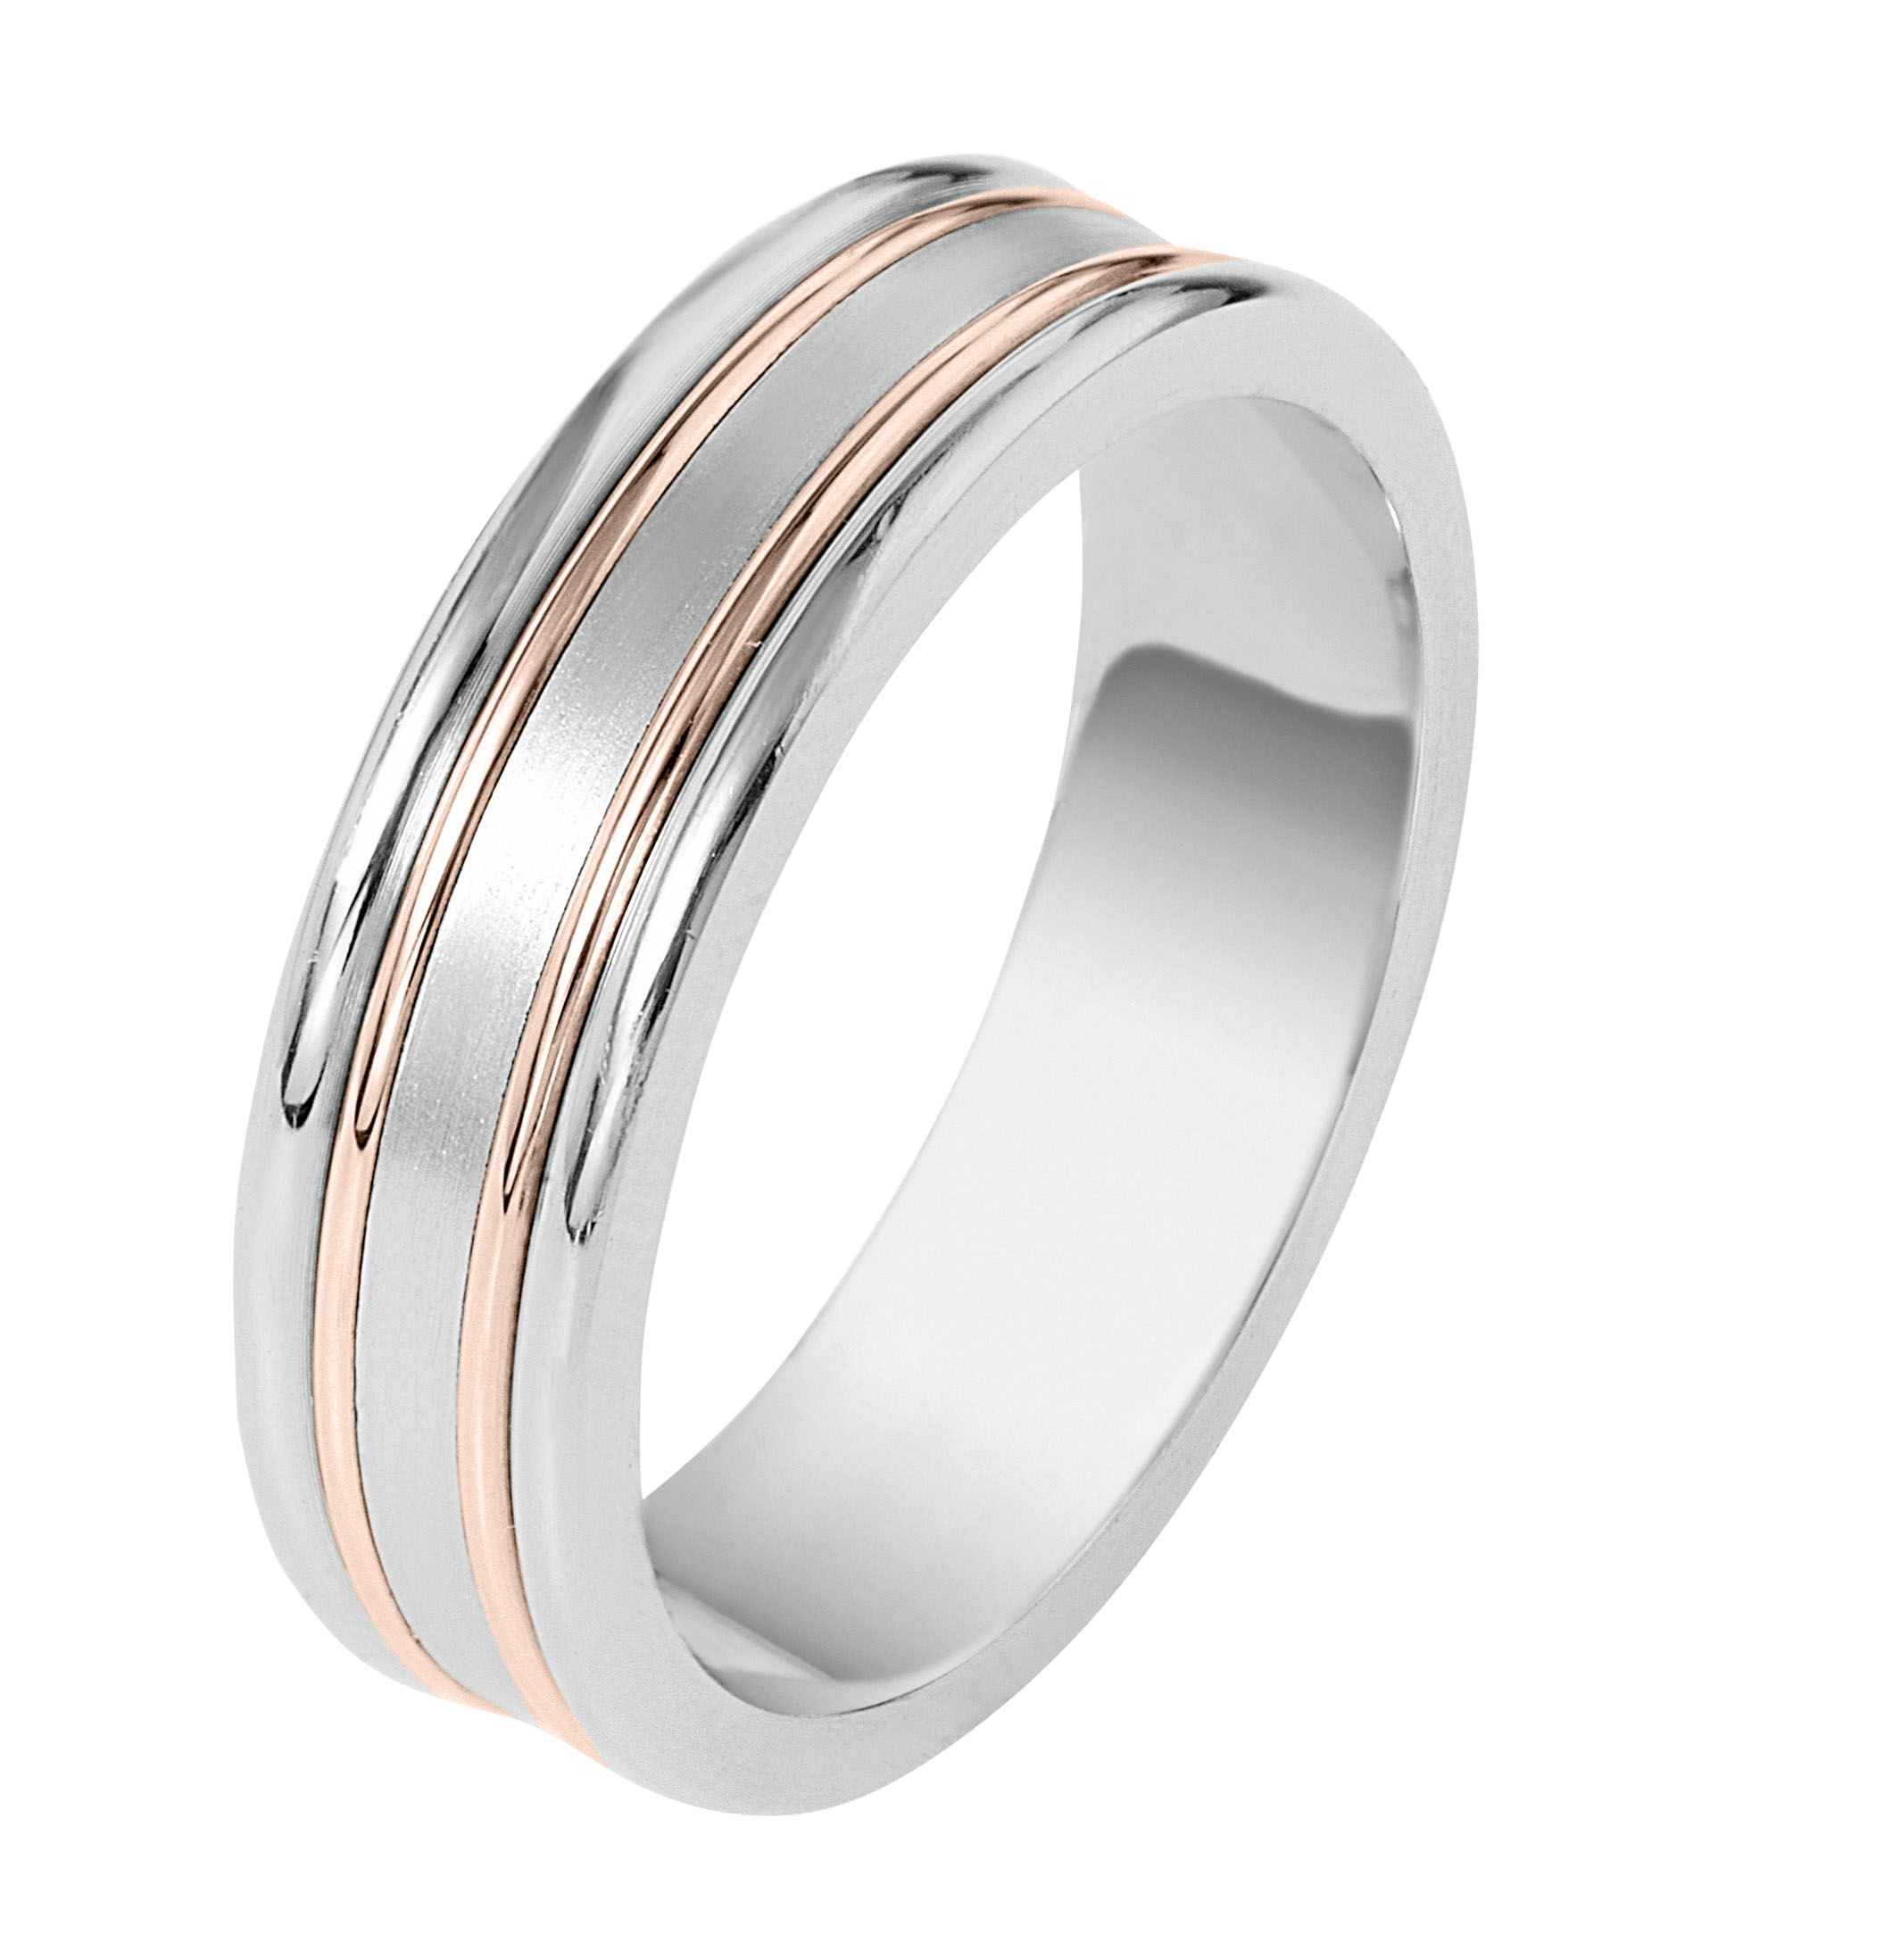 Mens Wedding Bands – Henry's Fine Jewelry With Regard To Most Up To Date White Stripes Wedding Rings (Gallery 11 of 15)